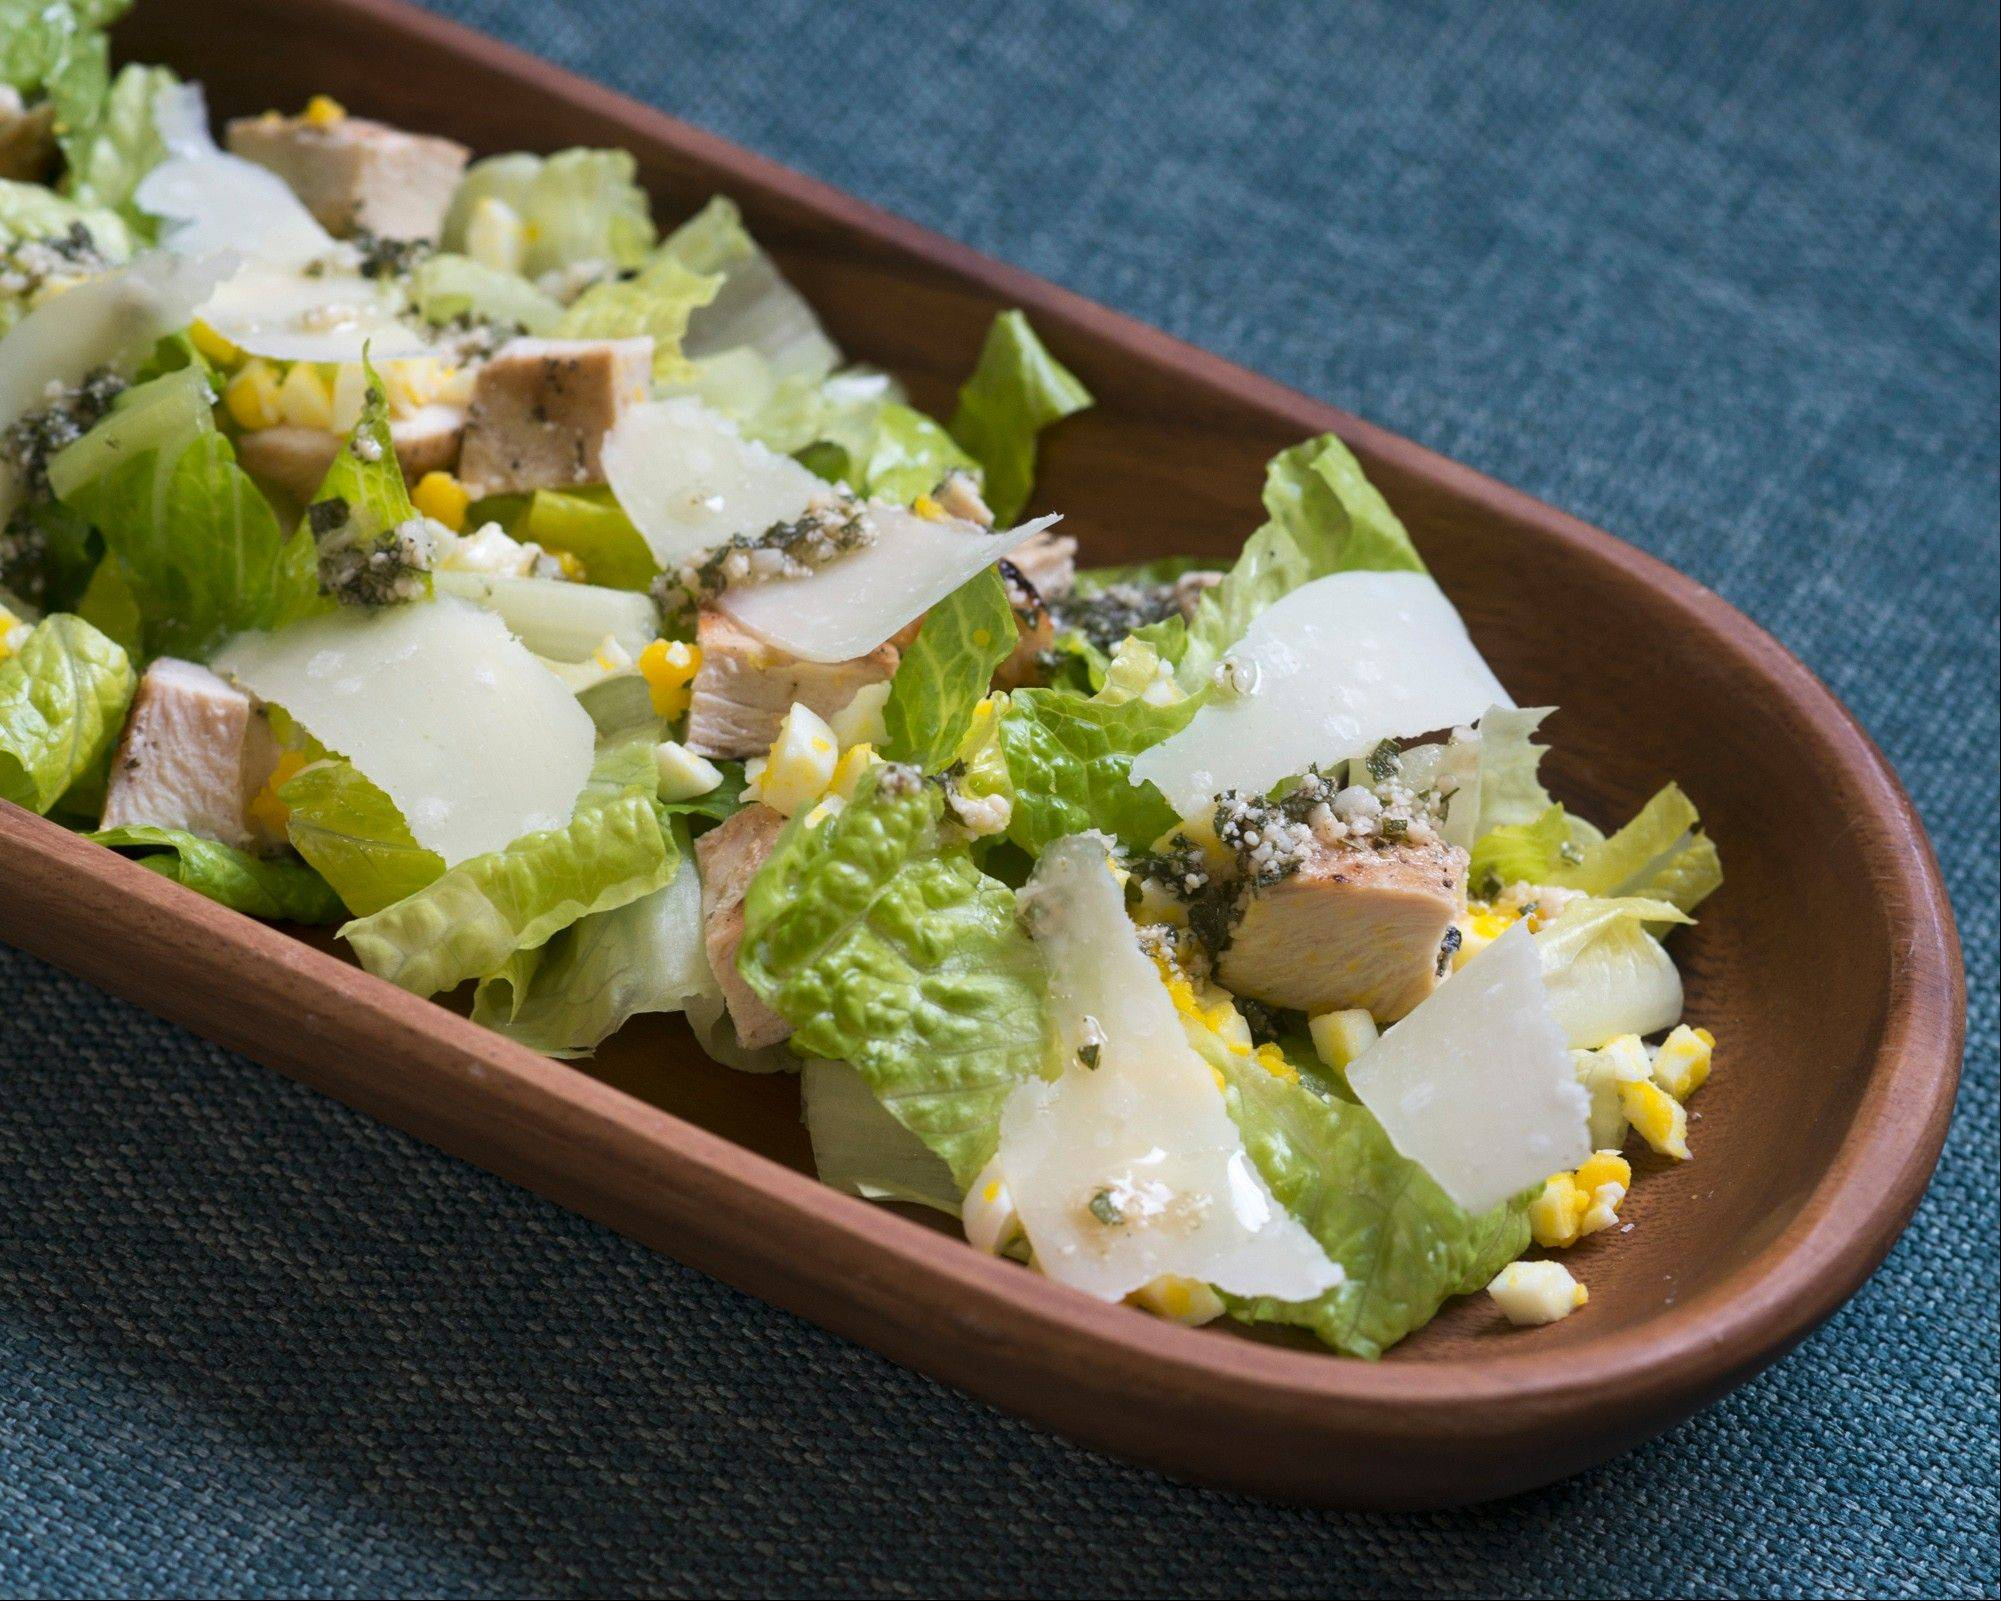 Garlic-Oregano Chicken Caesar Salad